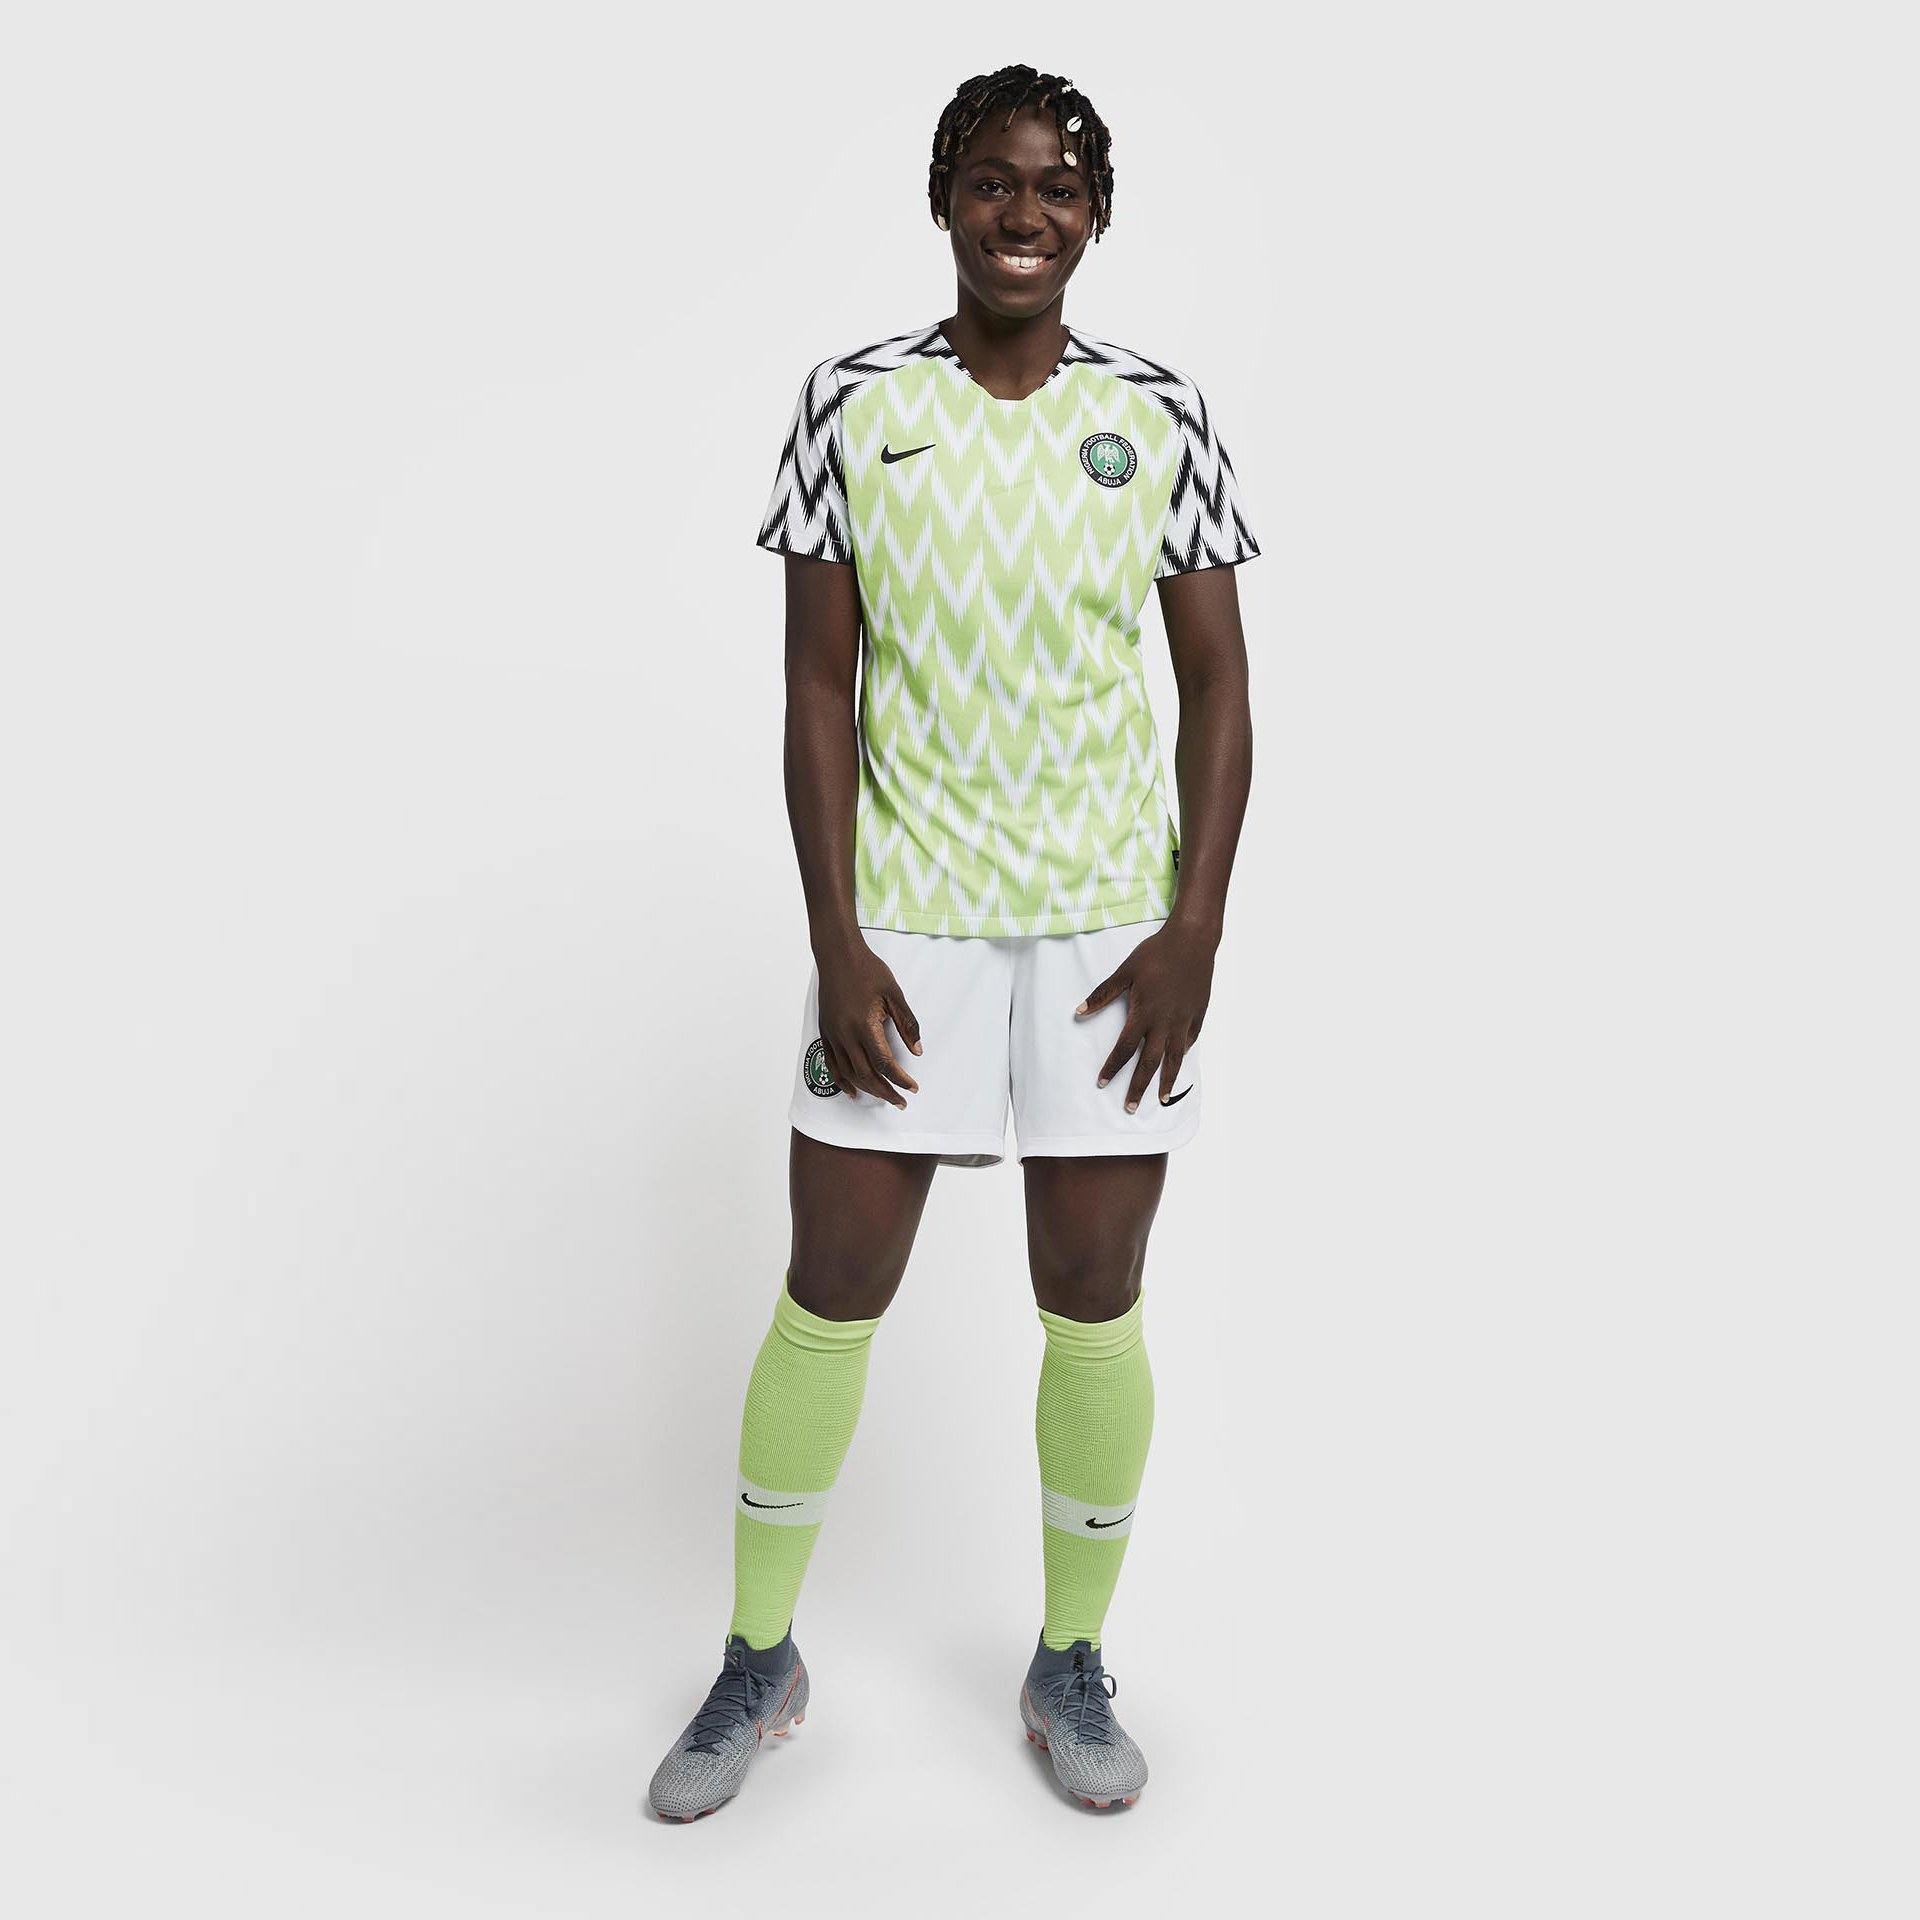 Maillot Femme Nigeria 2020 Nike Football Foot Coupe Du Monde freeshipping - Foot Online